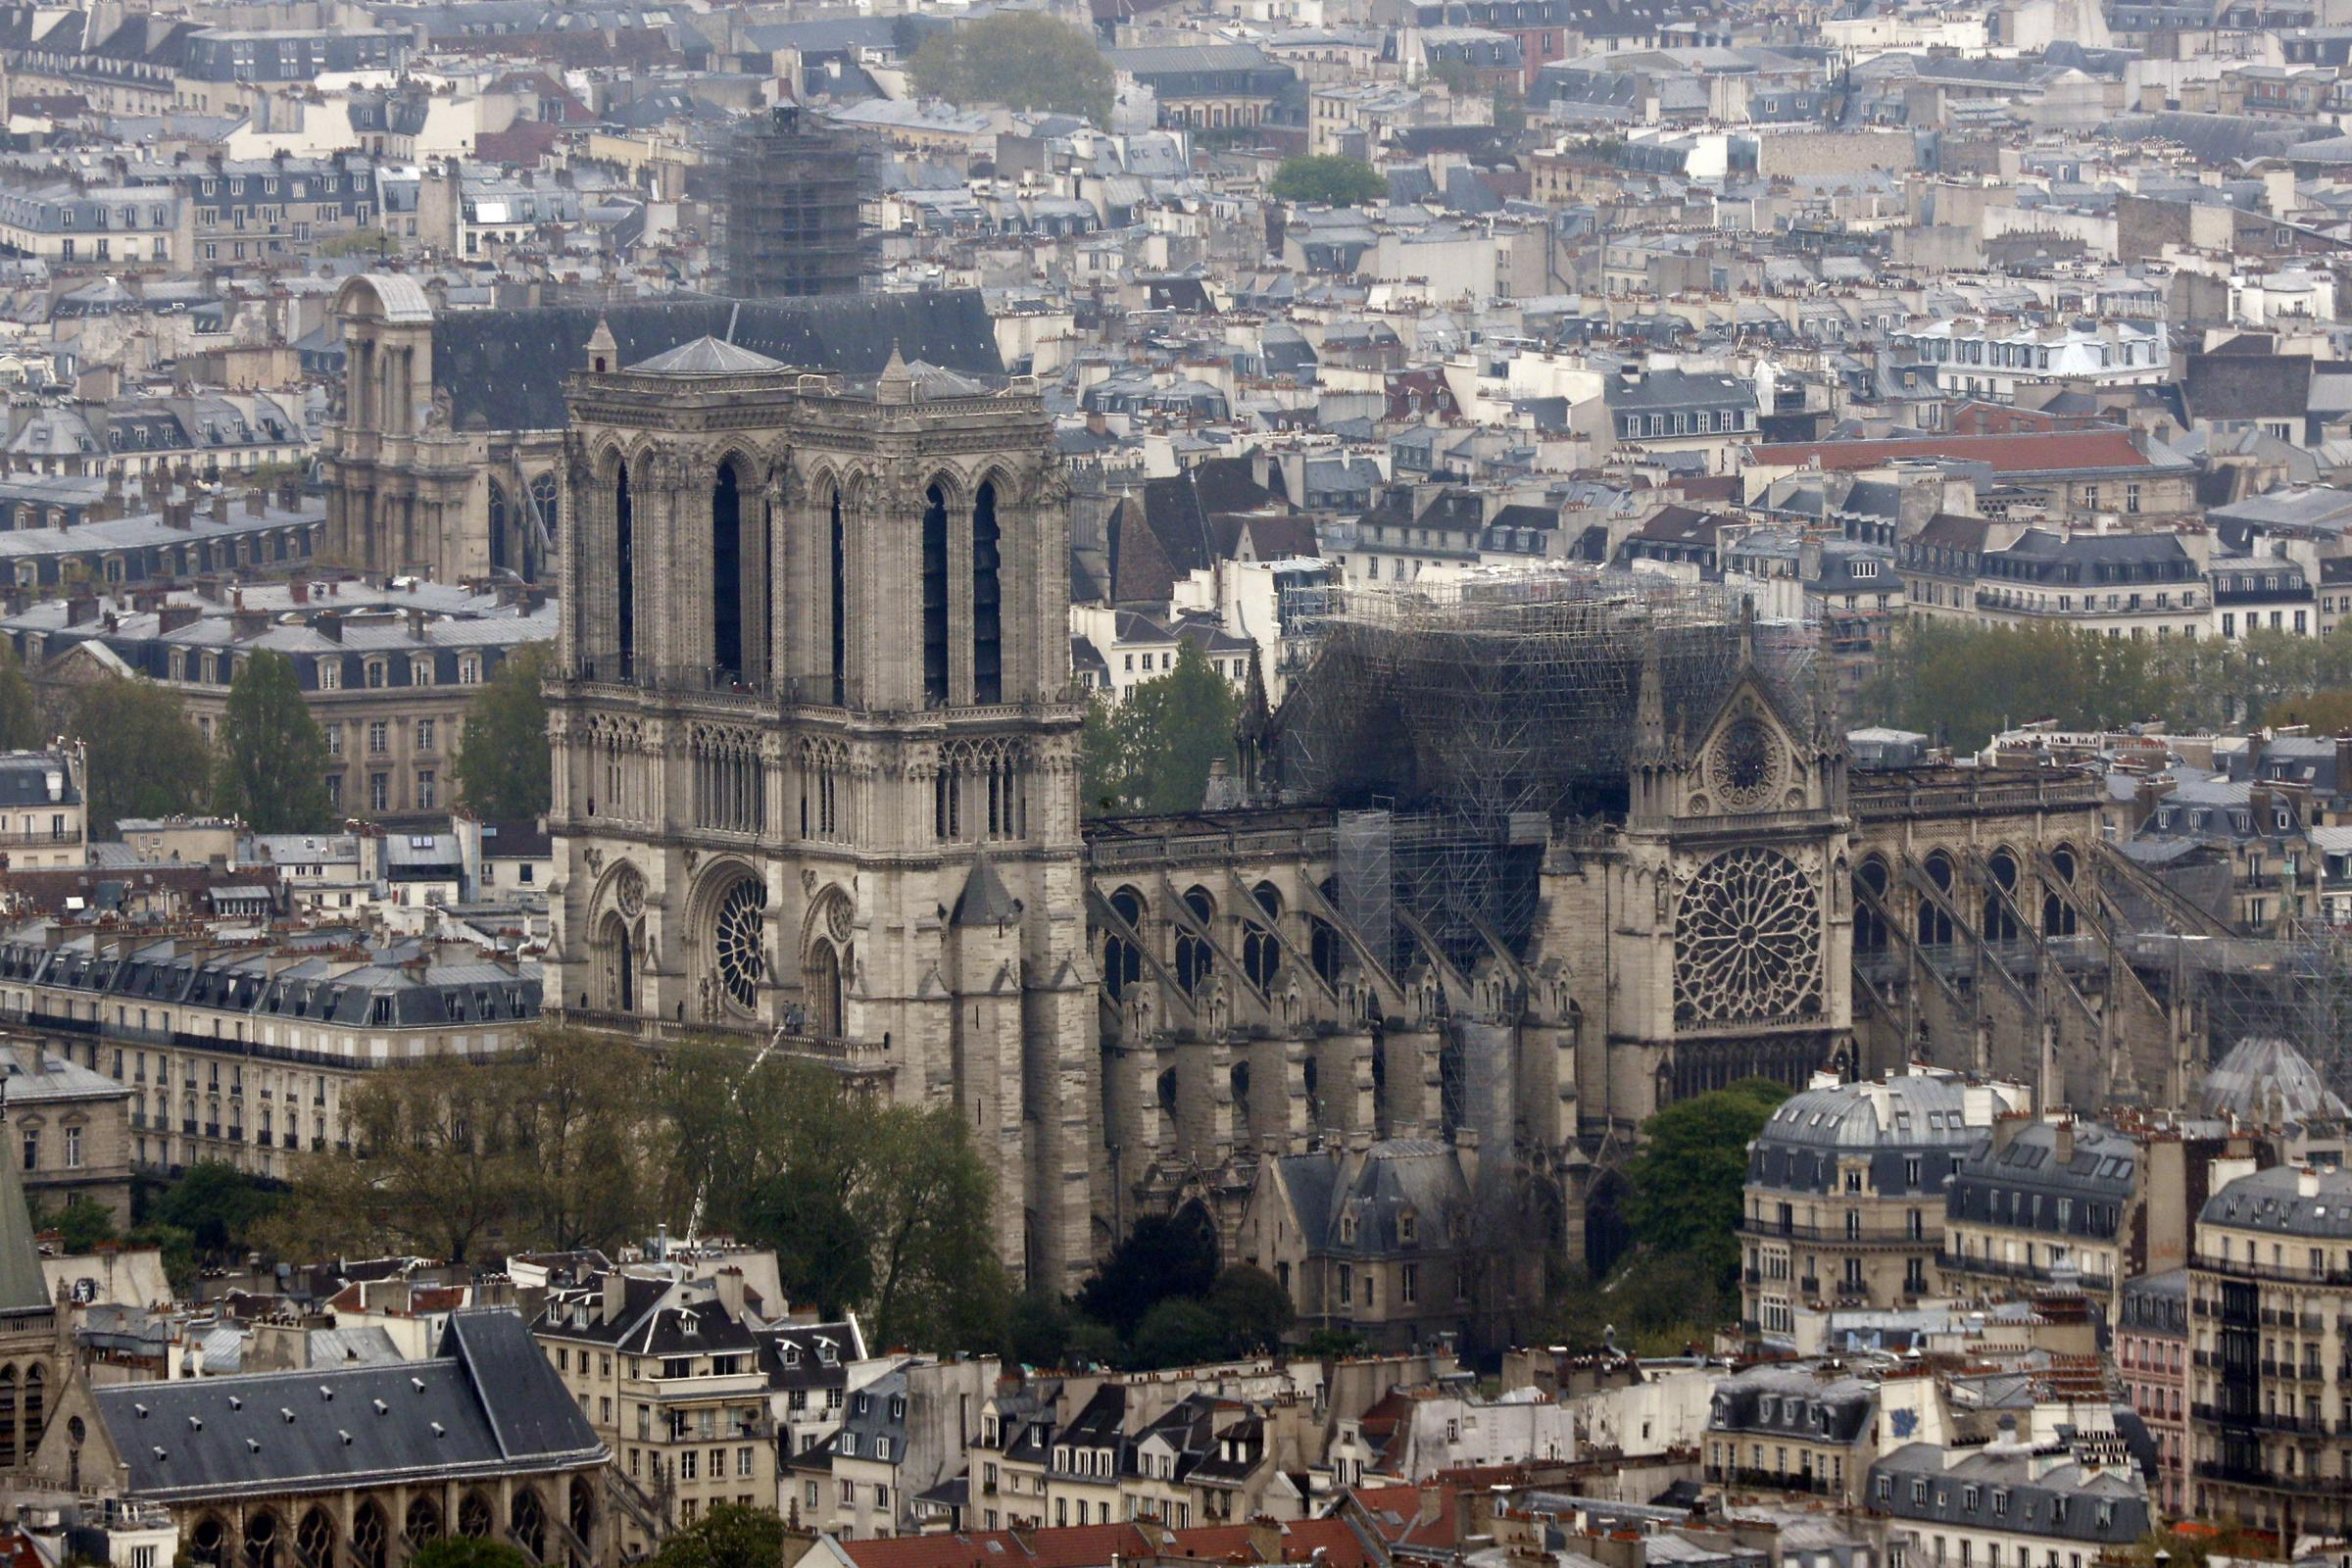 Huge sums have been pledged to repair Notre Dame